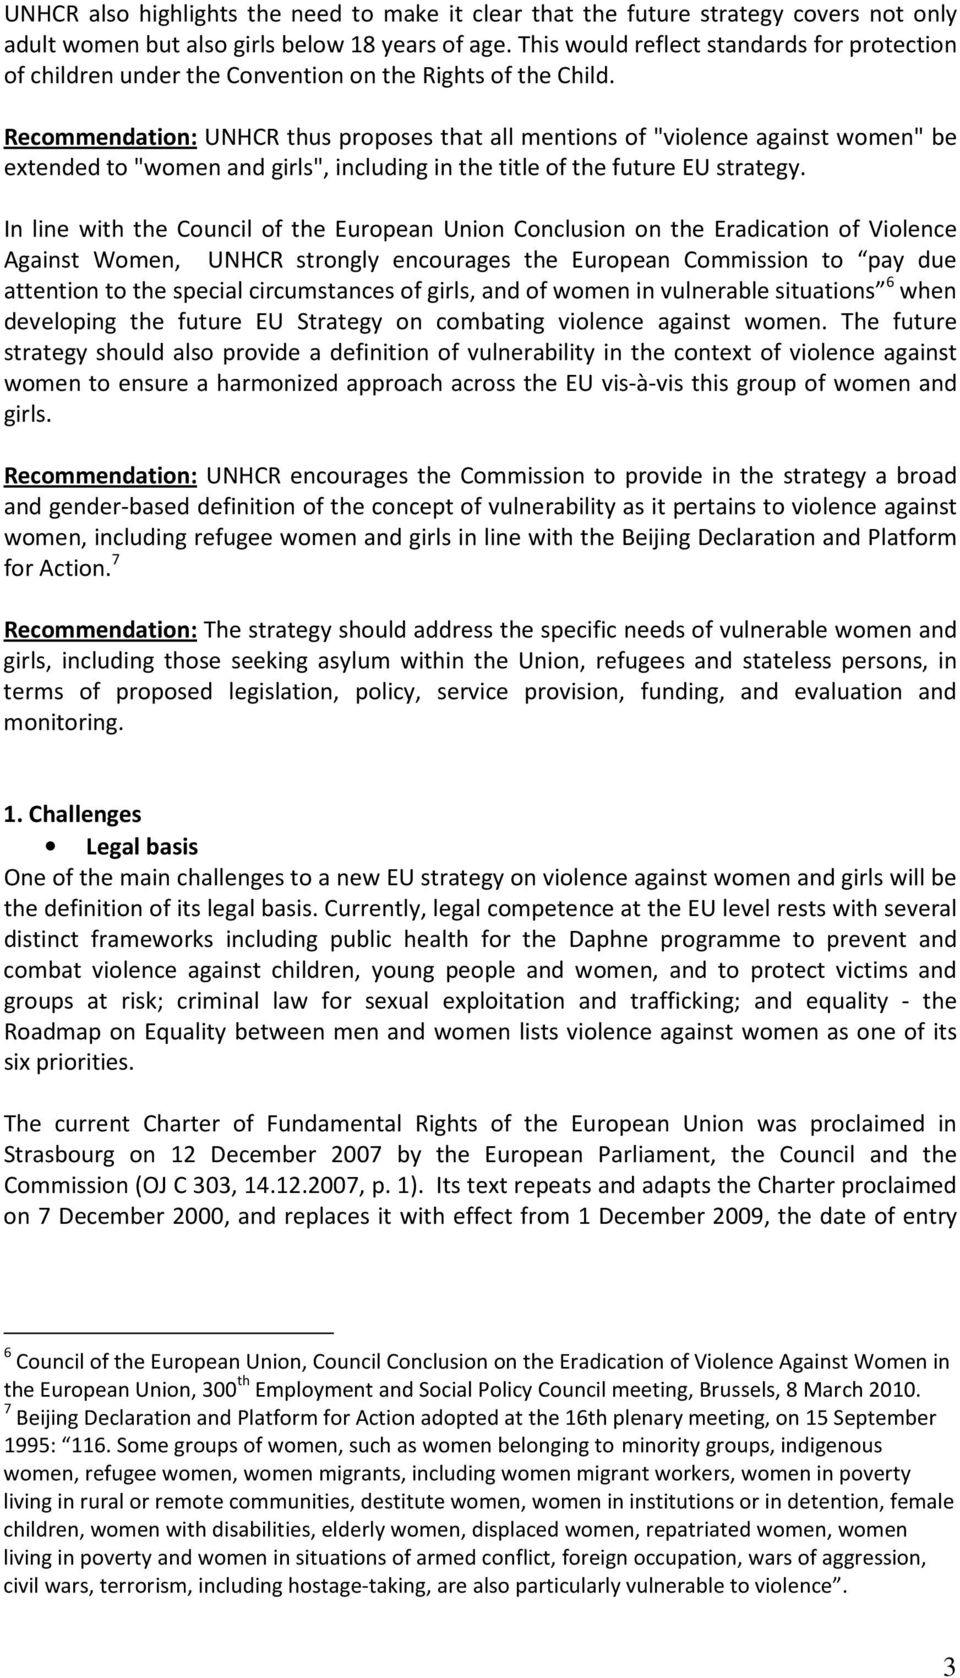 "Recommendation: UNHCR thus proposes that all mentions of ""violence against women"" be extended to ""women and girls"", including in the title of the future EU strategy."